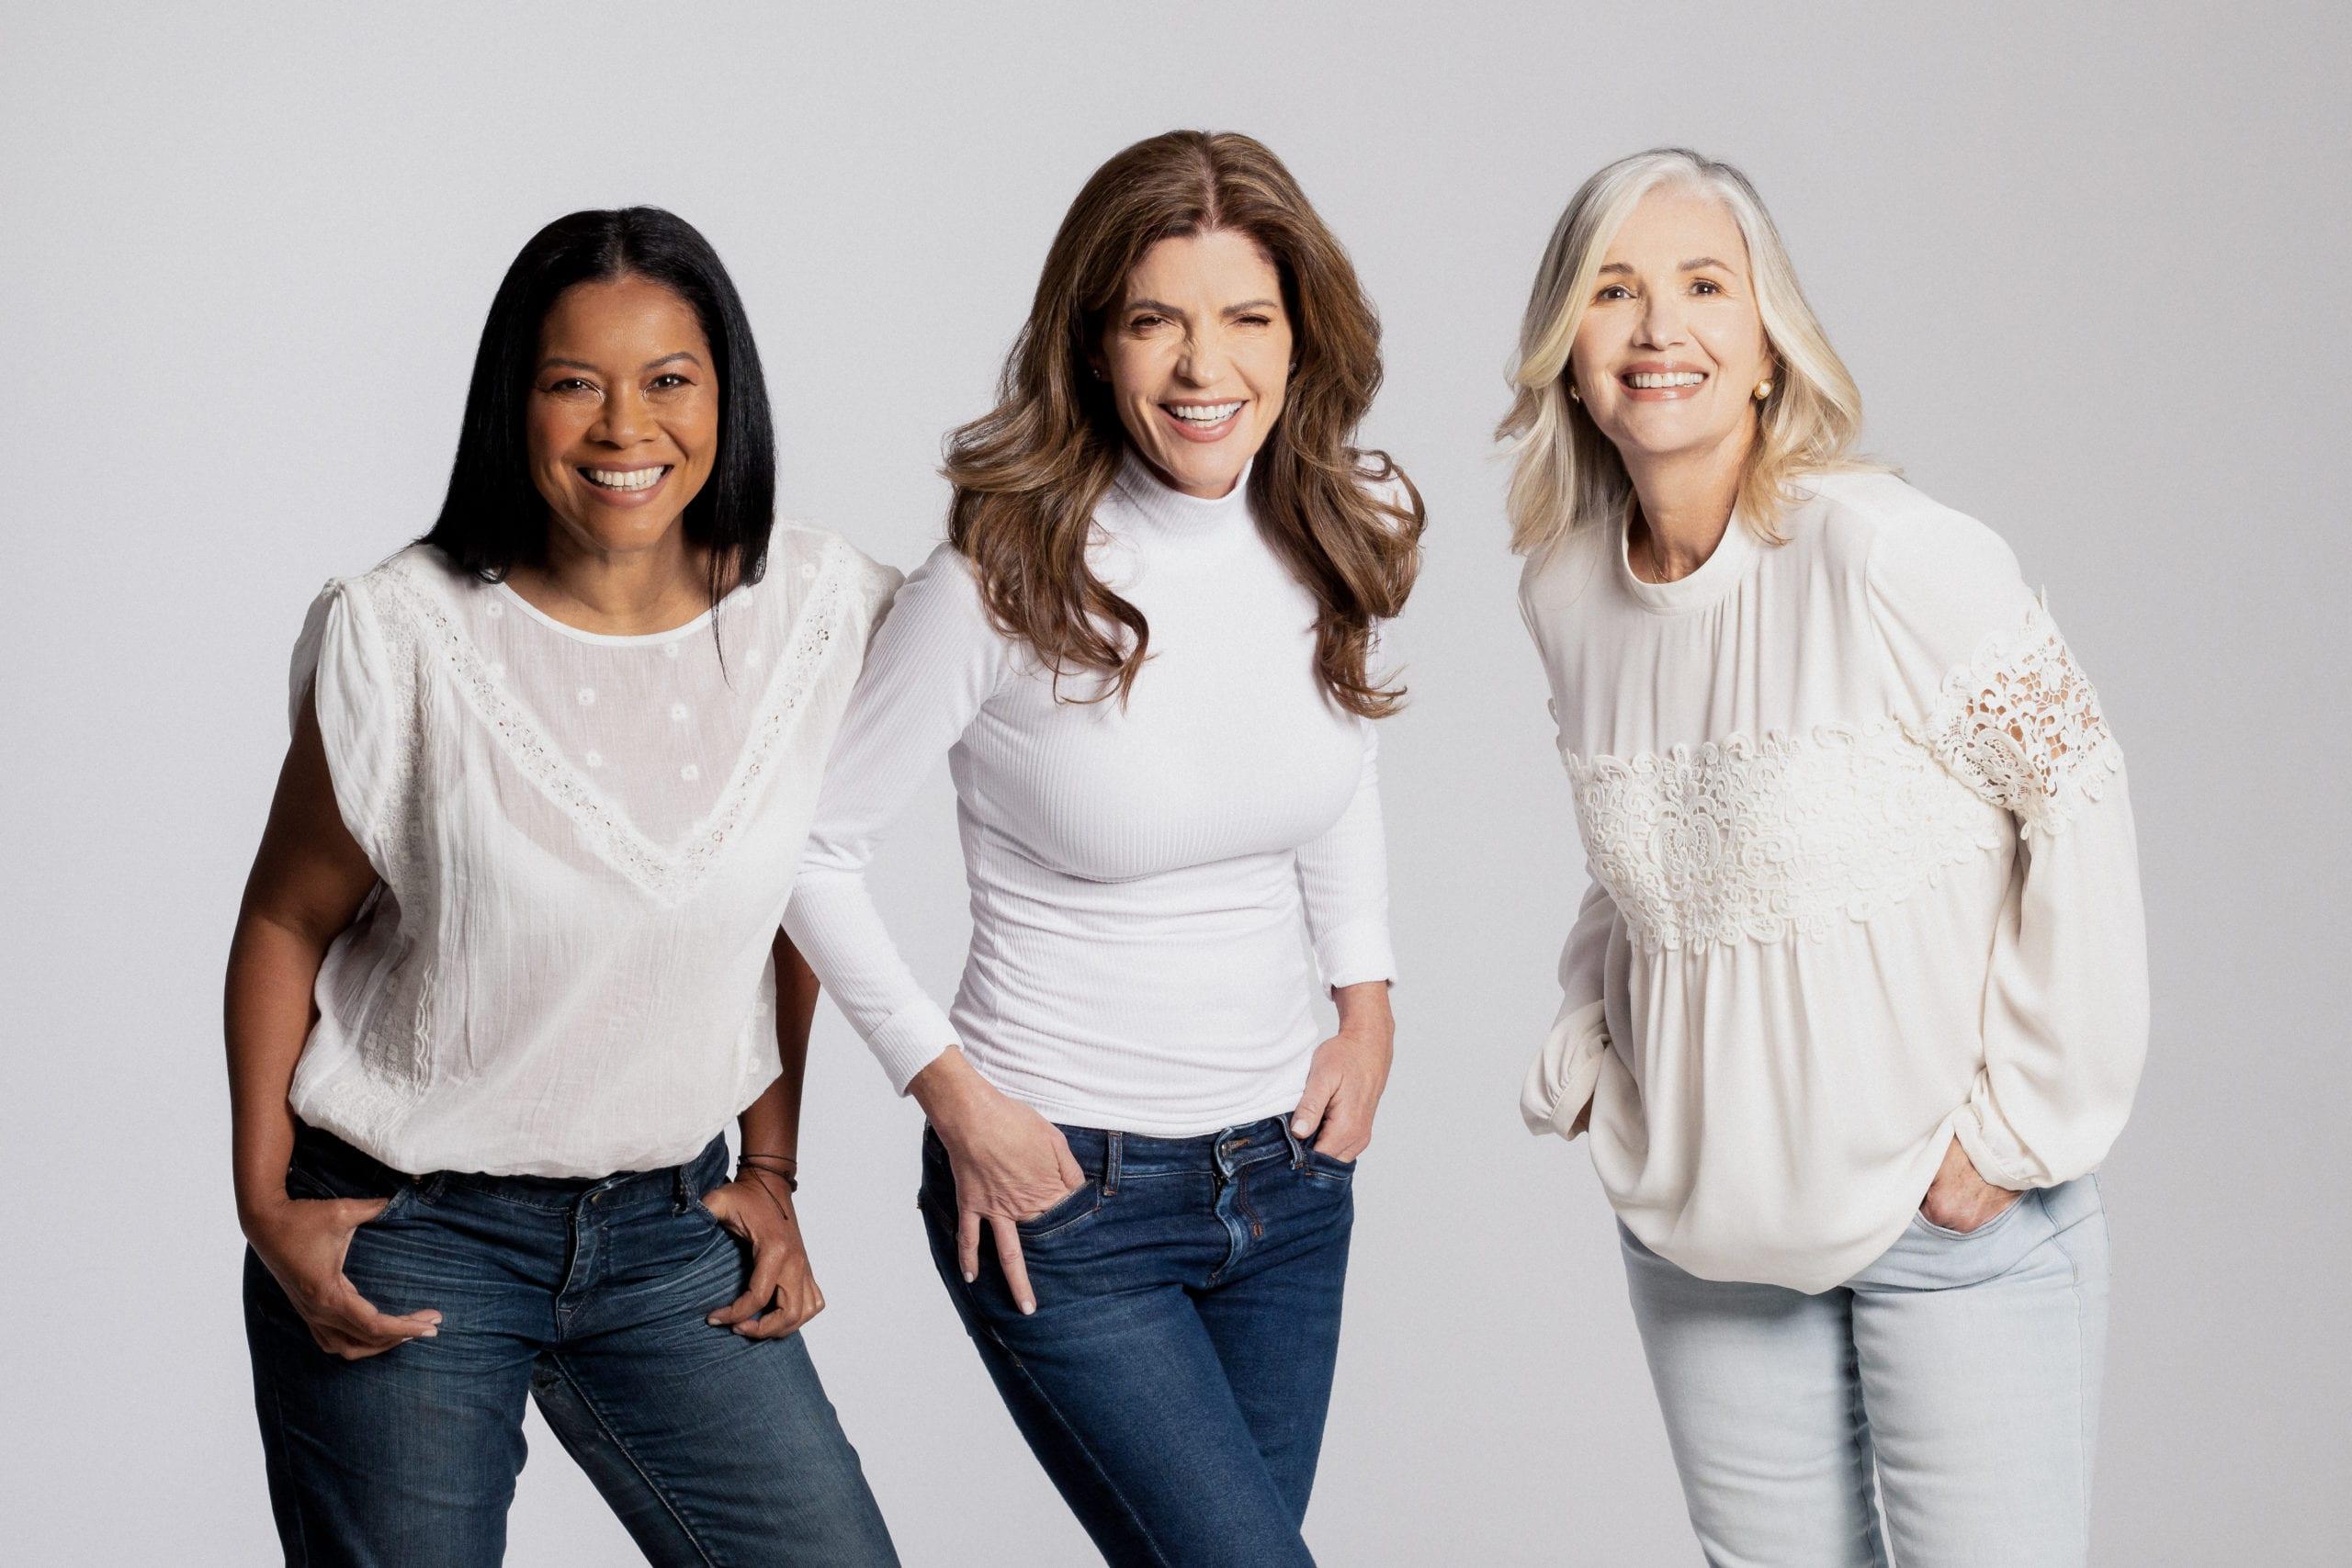 Busting the Hair x Menopause Taboo: A Conversation with Better Not Younger Founder, Sonsoles Gonzalez and Head of R&D, Dr. Debra Lin